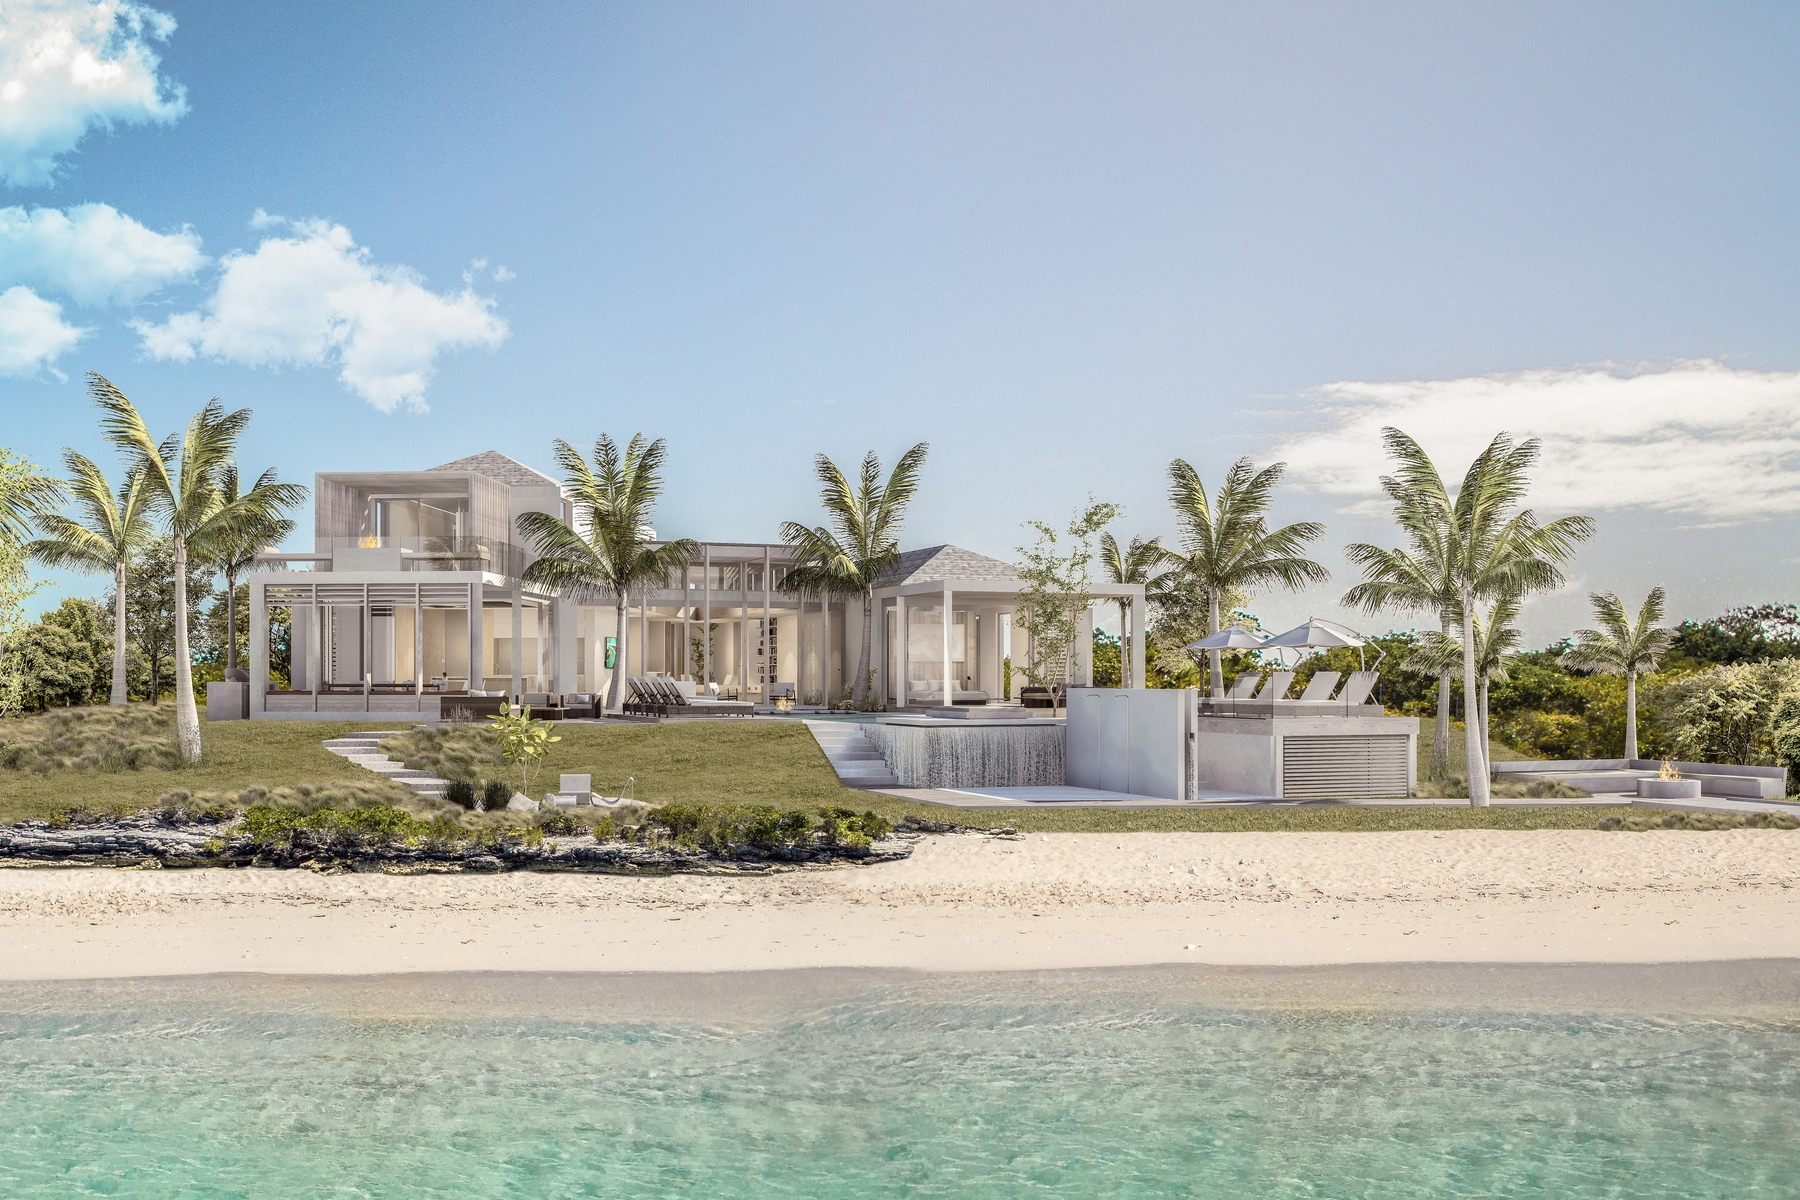 Maison unifamiliale pour l Vente à Panorama Y House - Beachfront Lot 2 Leeward, Providenciales Îles Turques Et Caïques